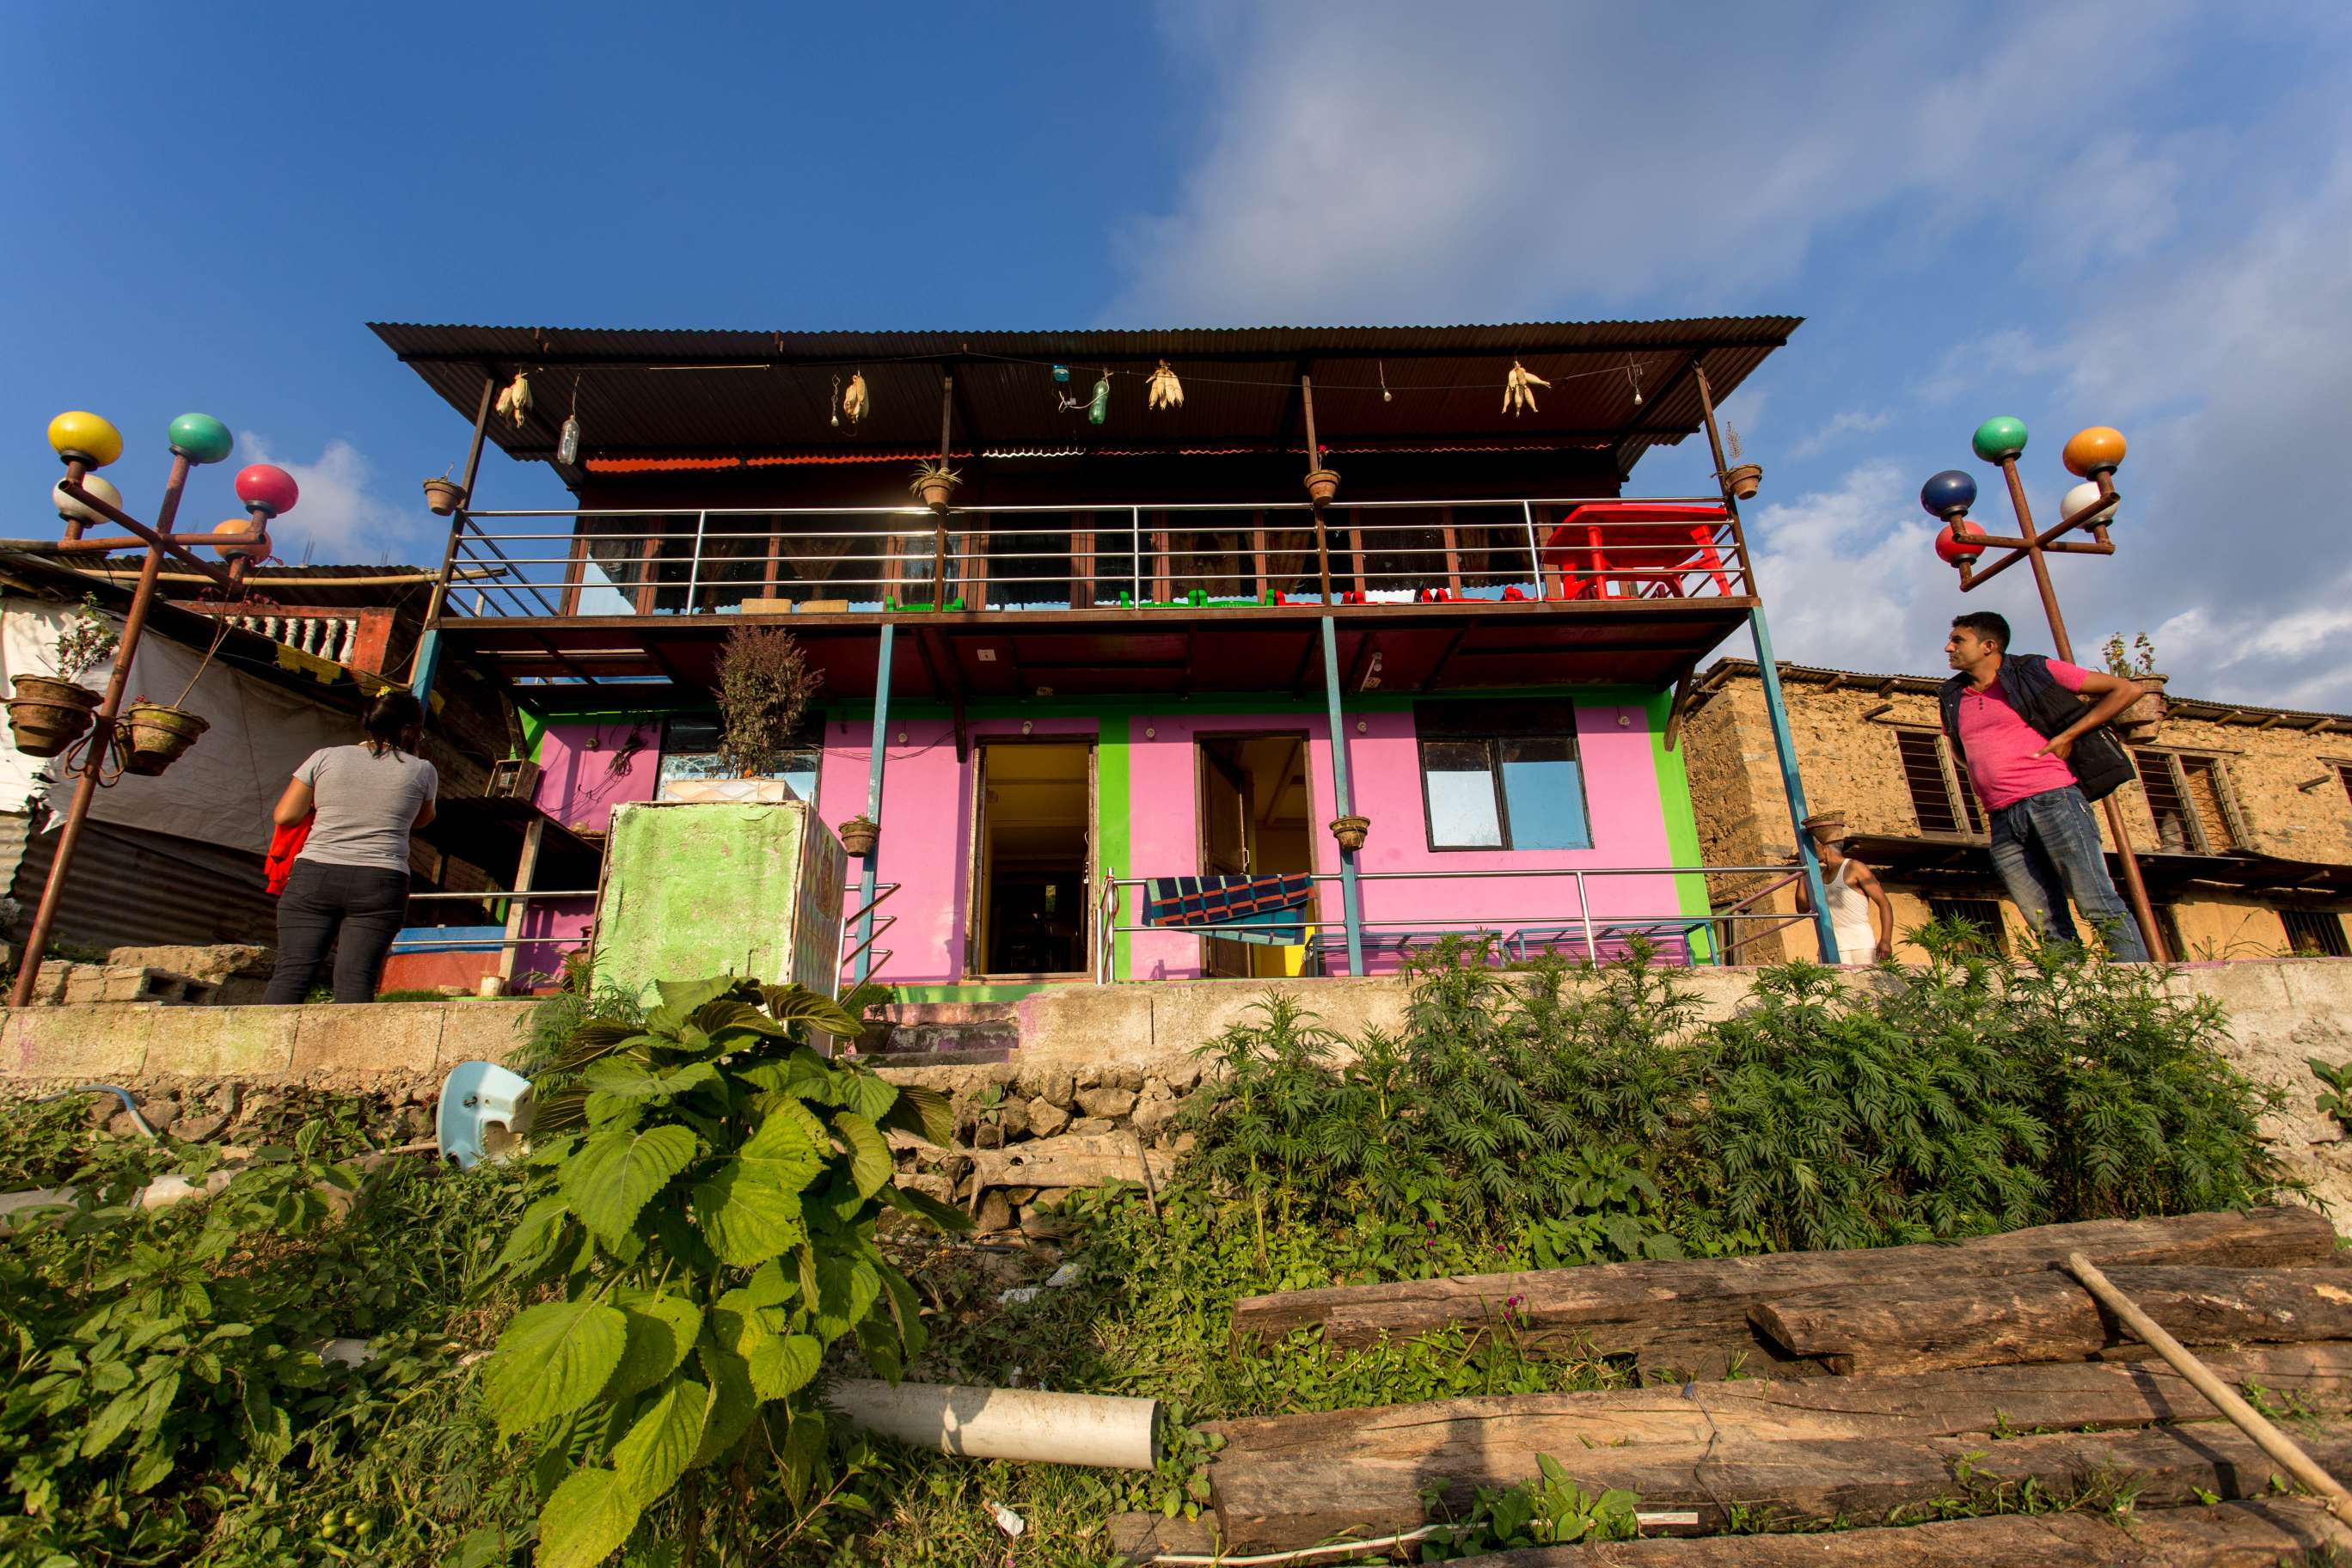 A colorful village house in Nagarkot Community homestay